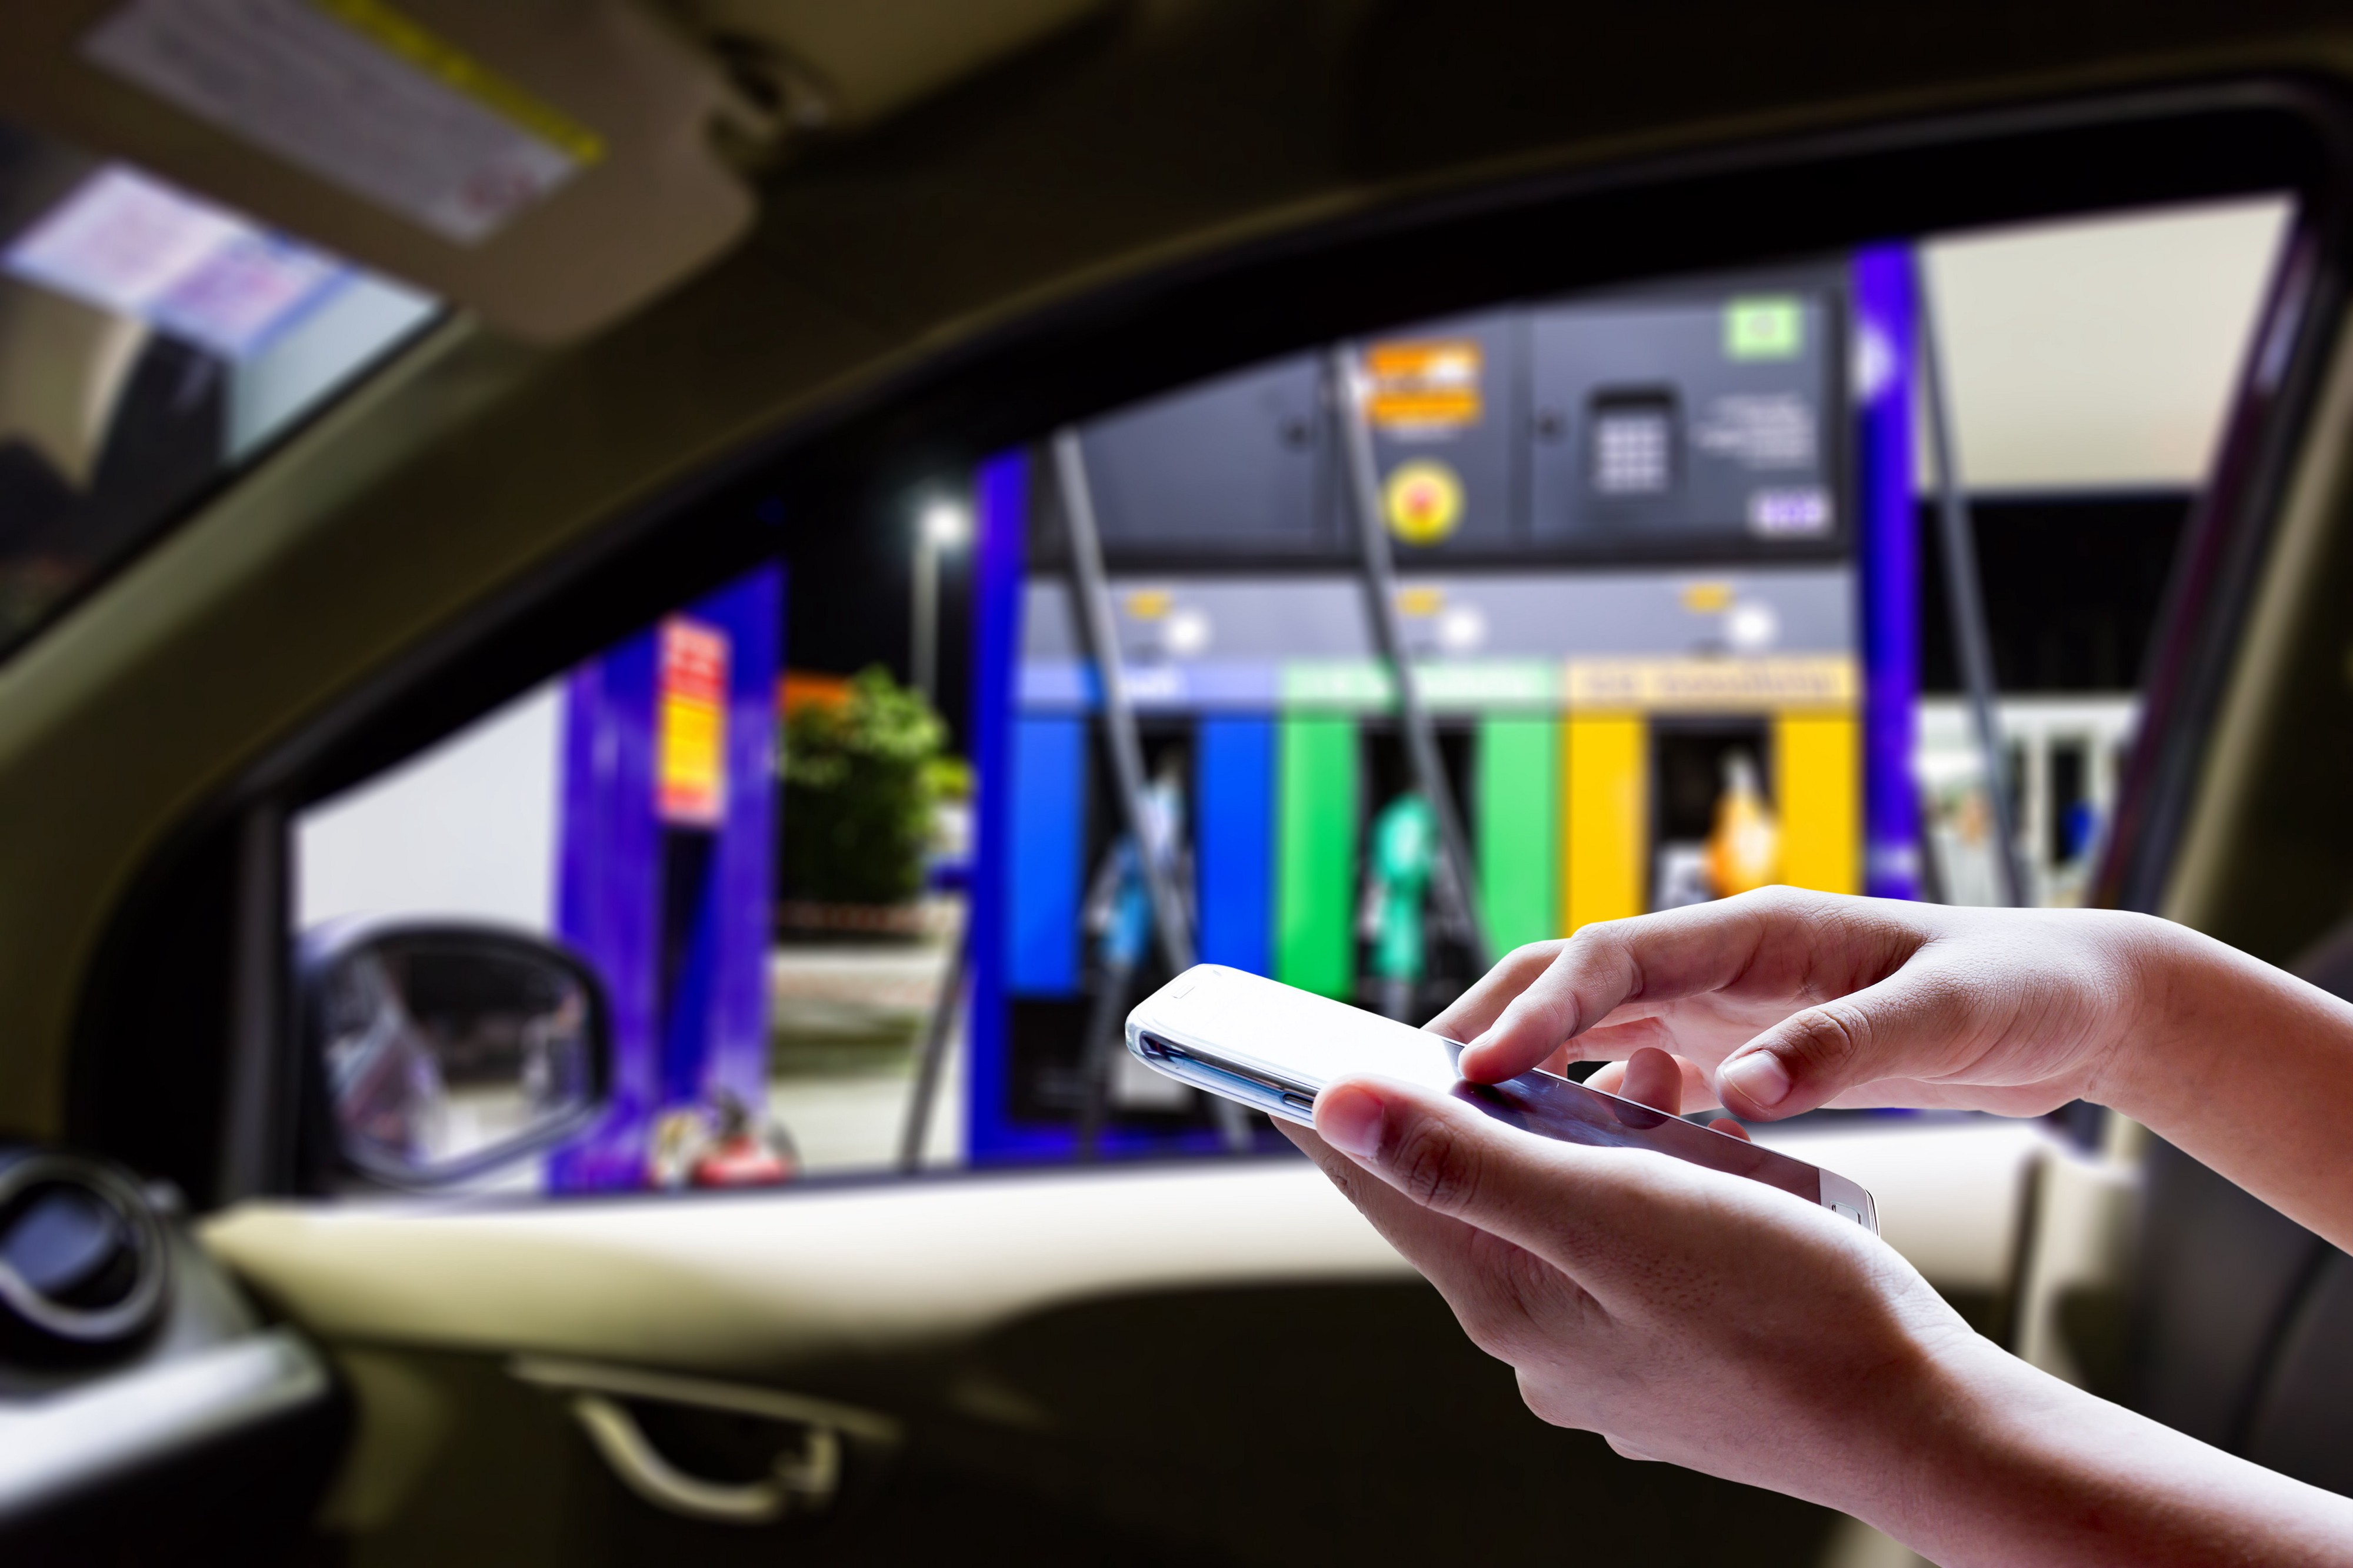 Gas Providers: It's Time to Fast-Track Contactless Fuel Pay | by Mobiquity Inc. | Medium